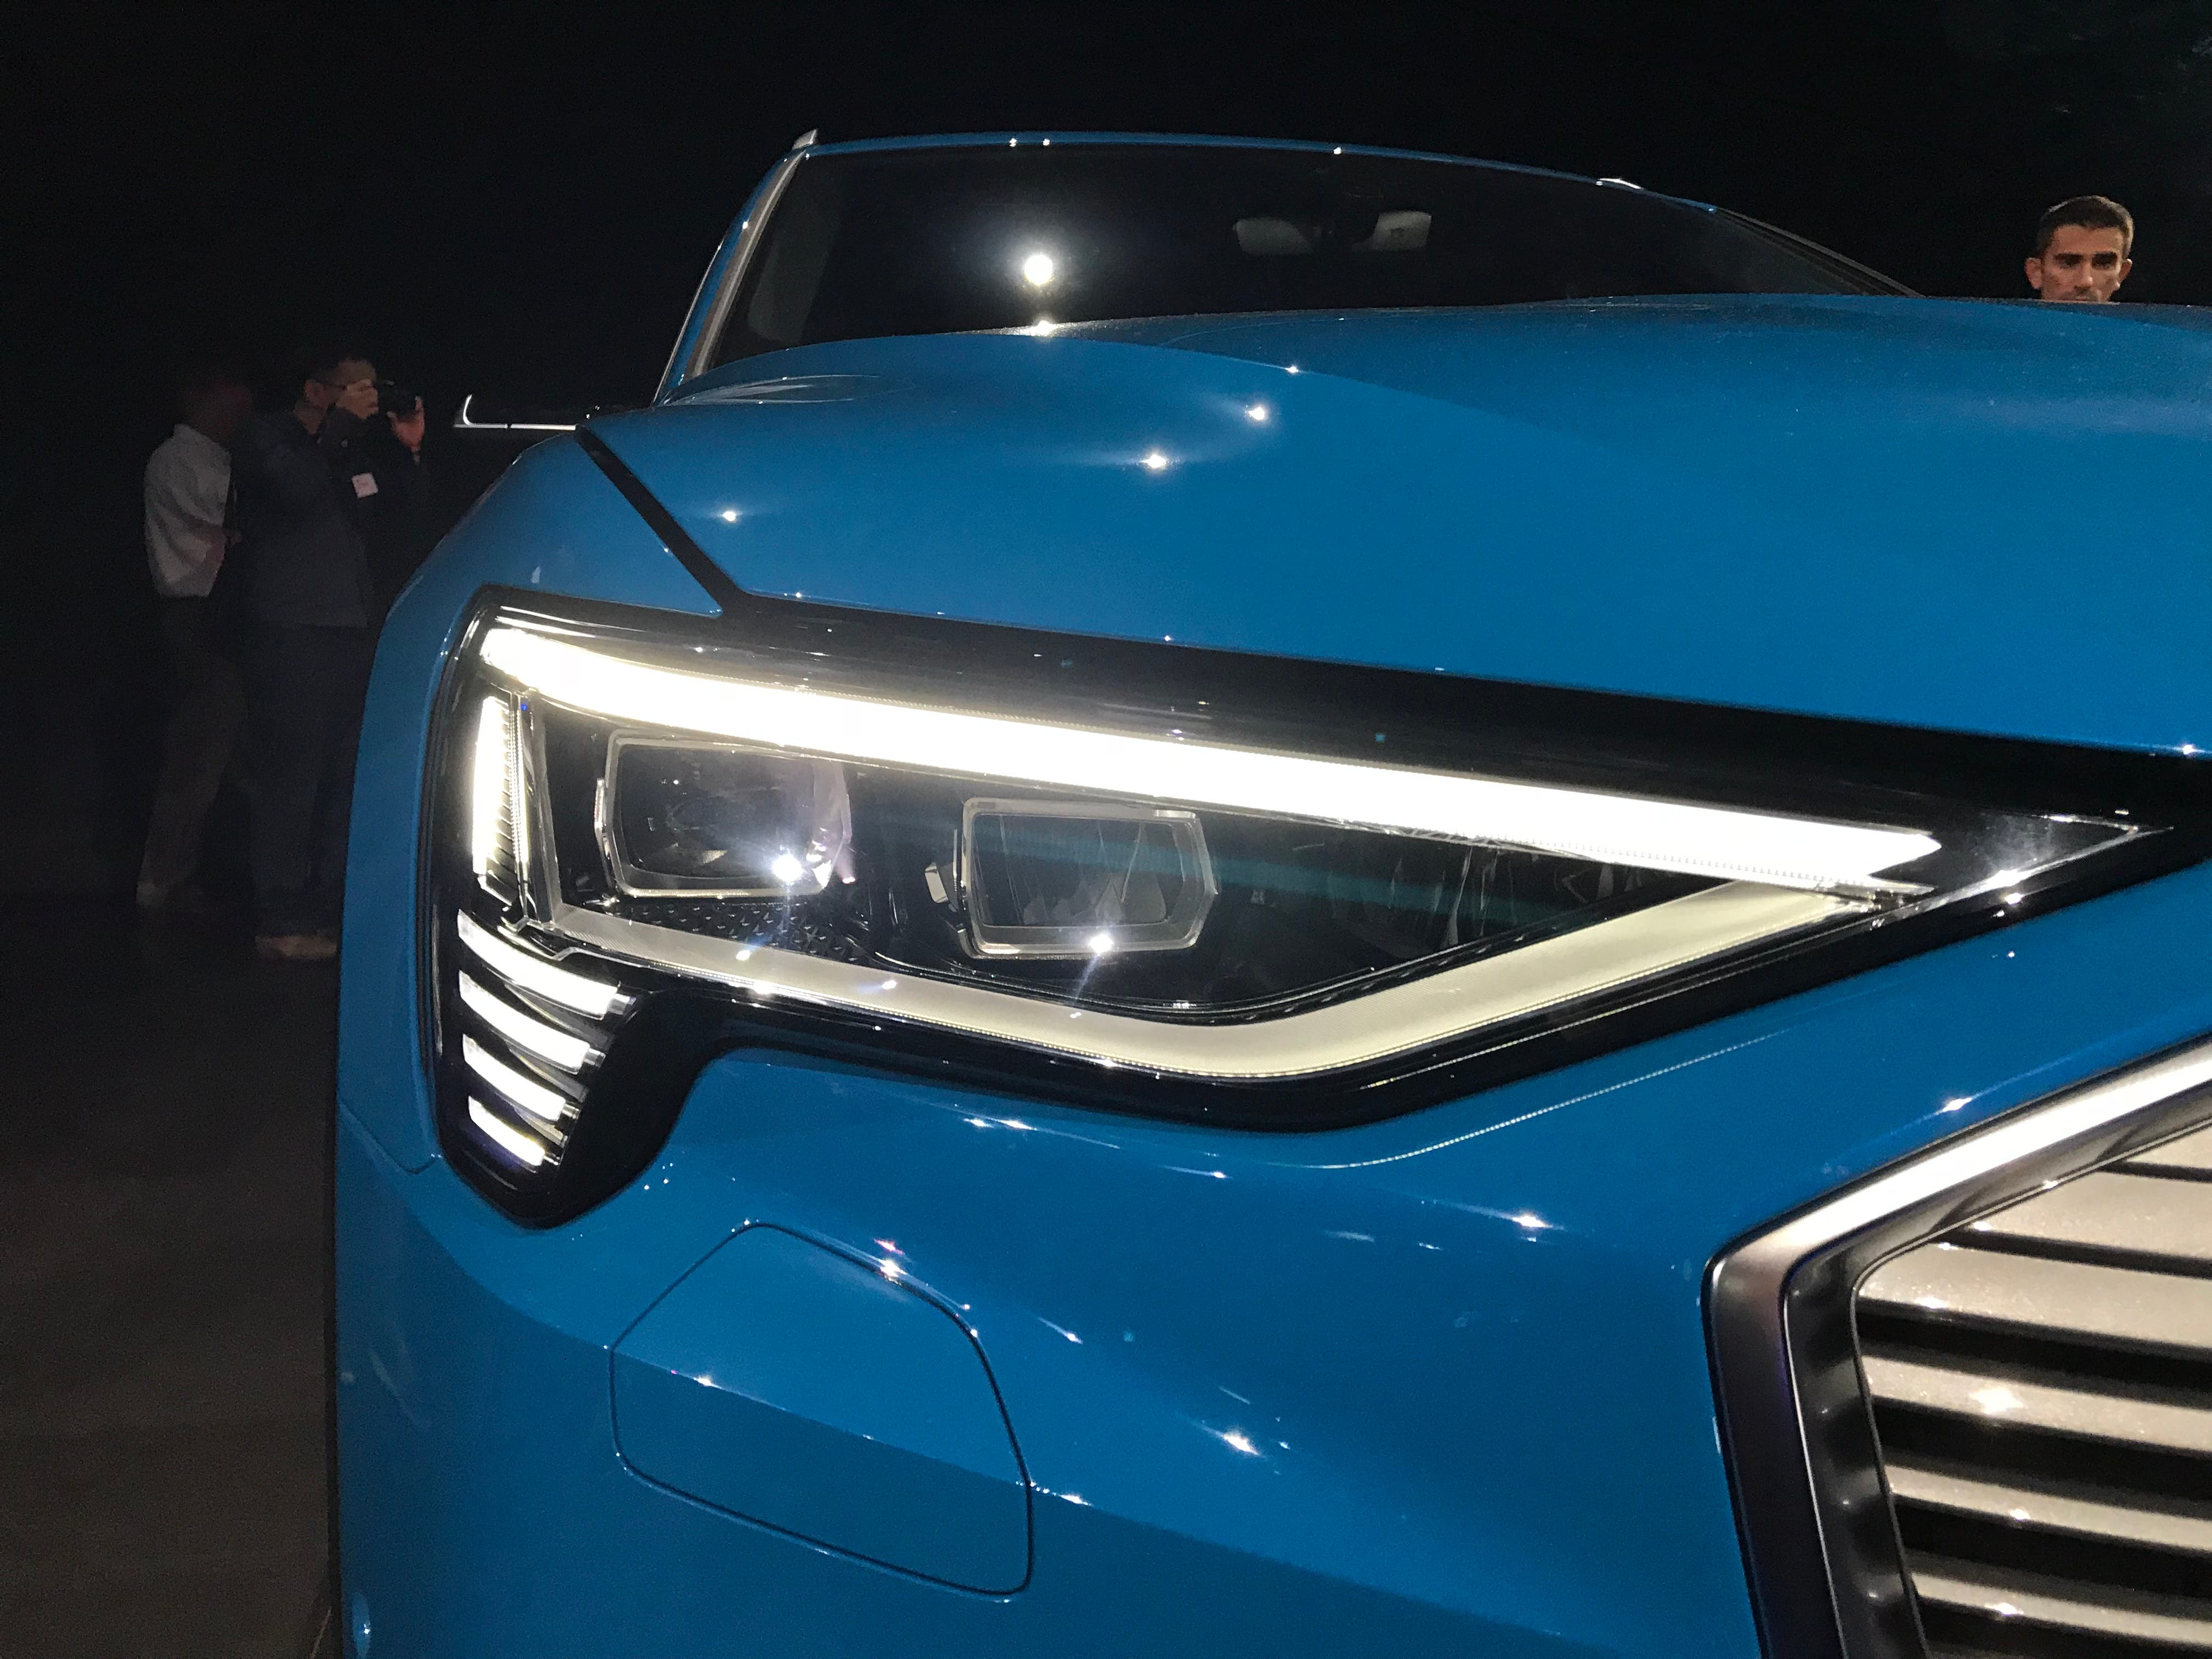 Just Yet What The E Tron S Range Will Be But Audi Of America President Scott Keogh Said Car Have Well Over 400 Kilometers On